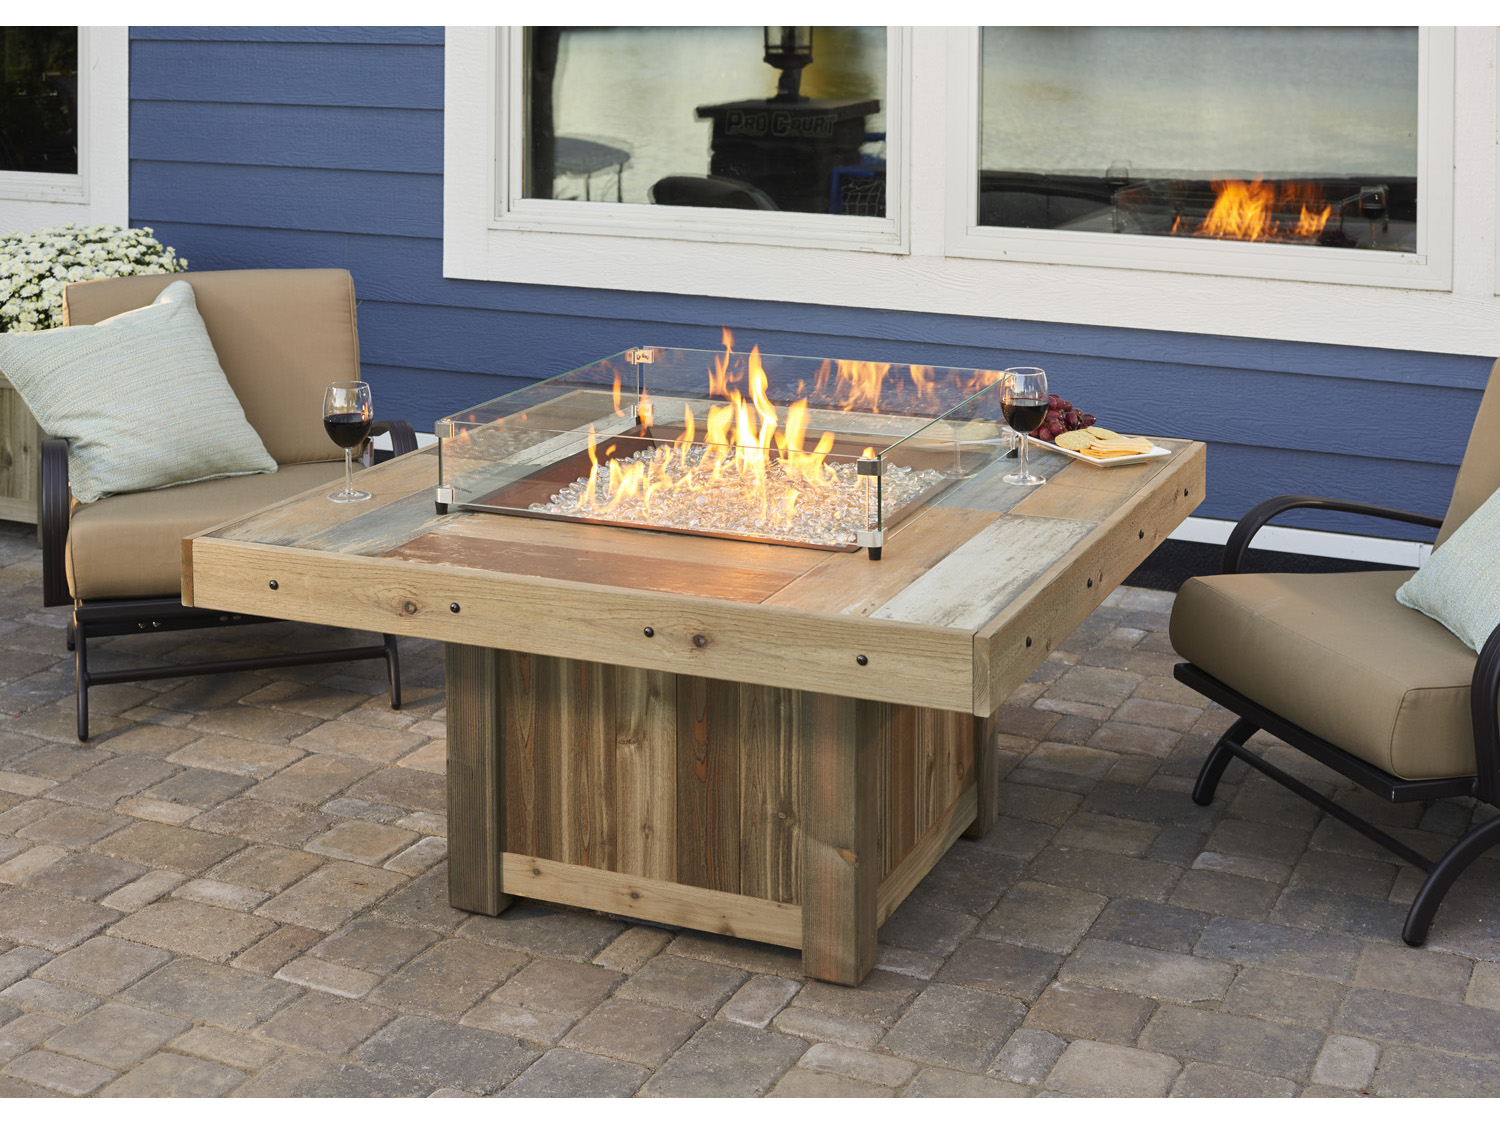 Outdoor Greatroom Vintage 48 25 Square Faux Wood Fire Table Outdoor Greatroom Vintage 48.25 Square Faux Wood Fire